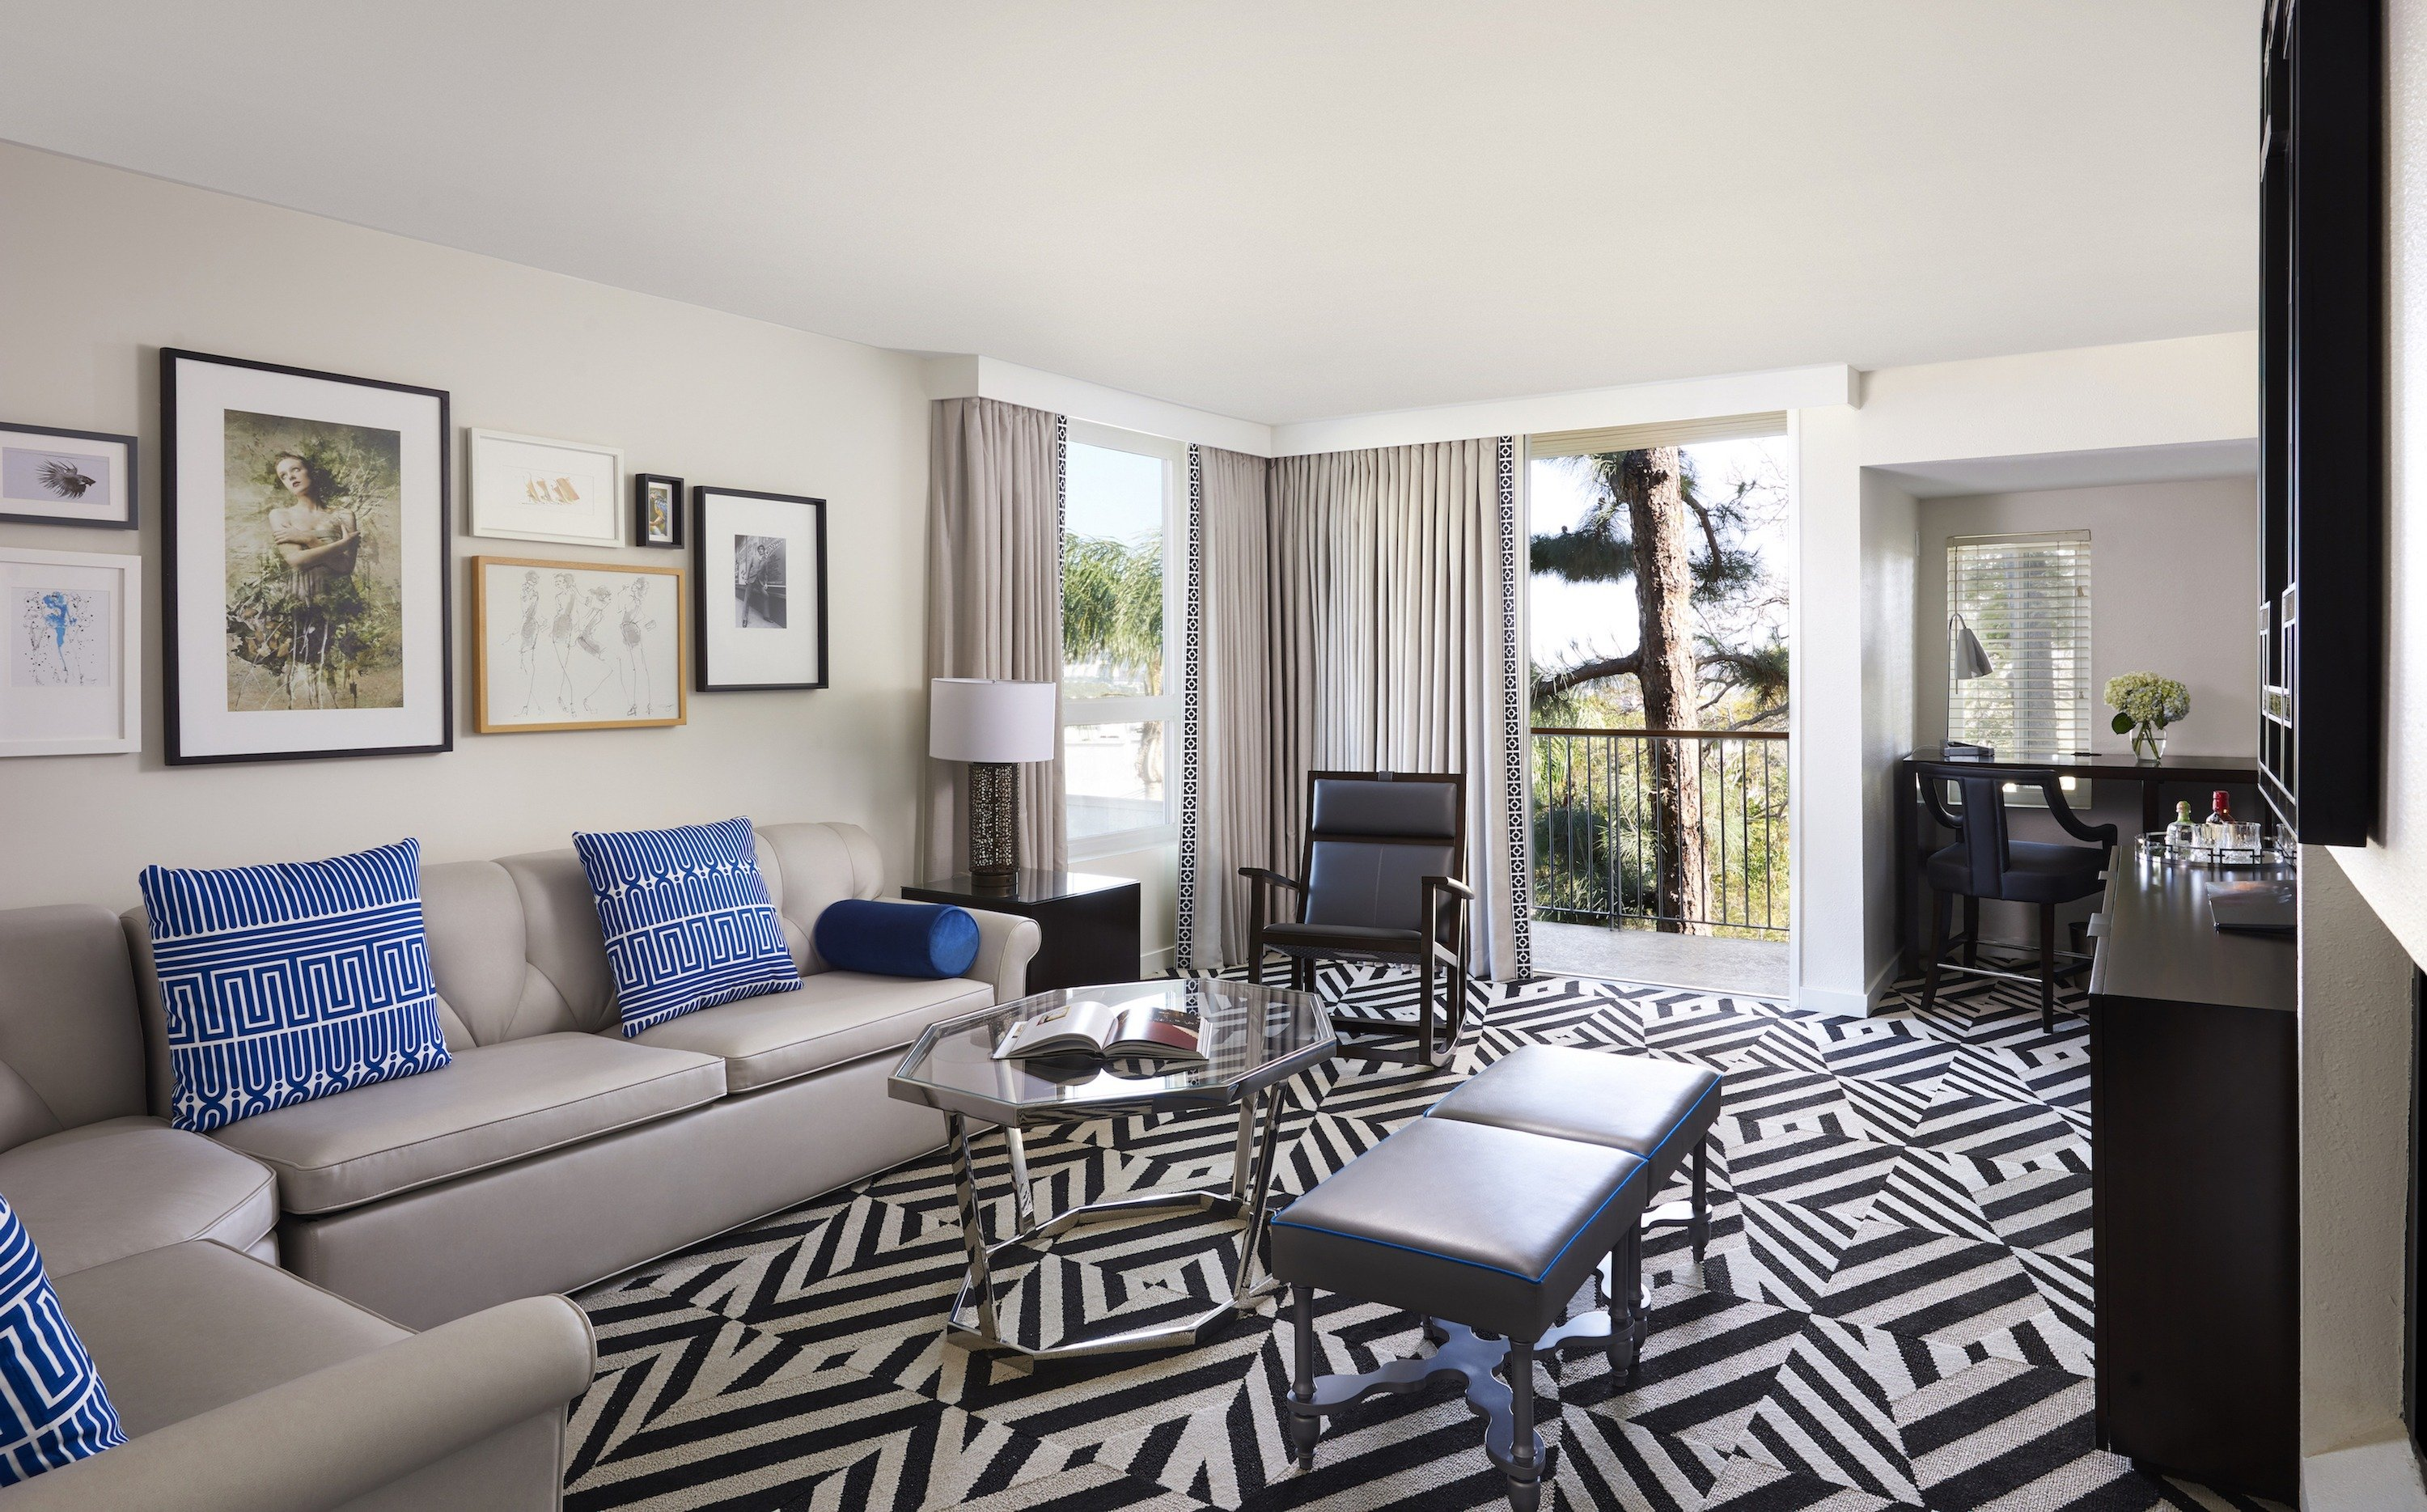 The living room of a one bedroom suite with black and white flooring and neutral decor with blue accents.